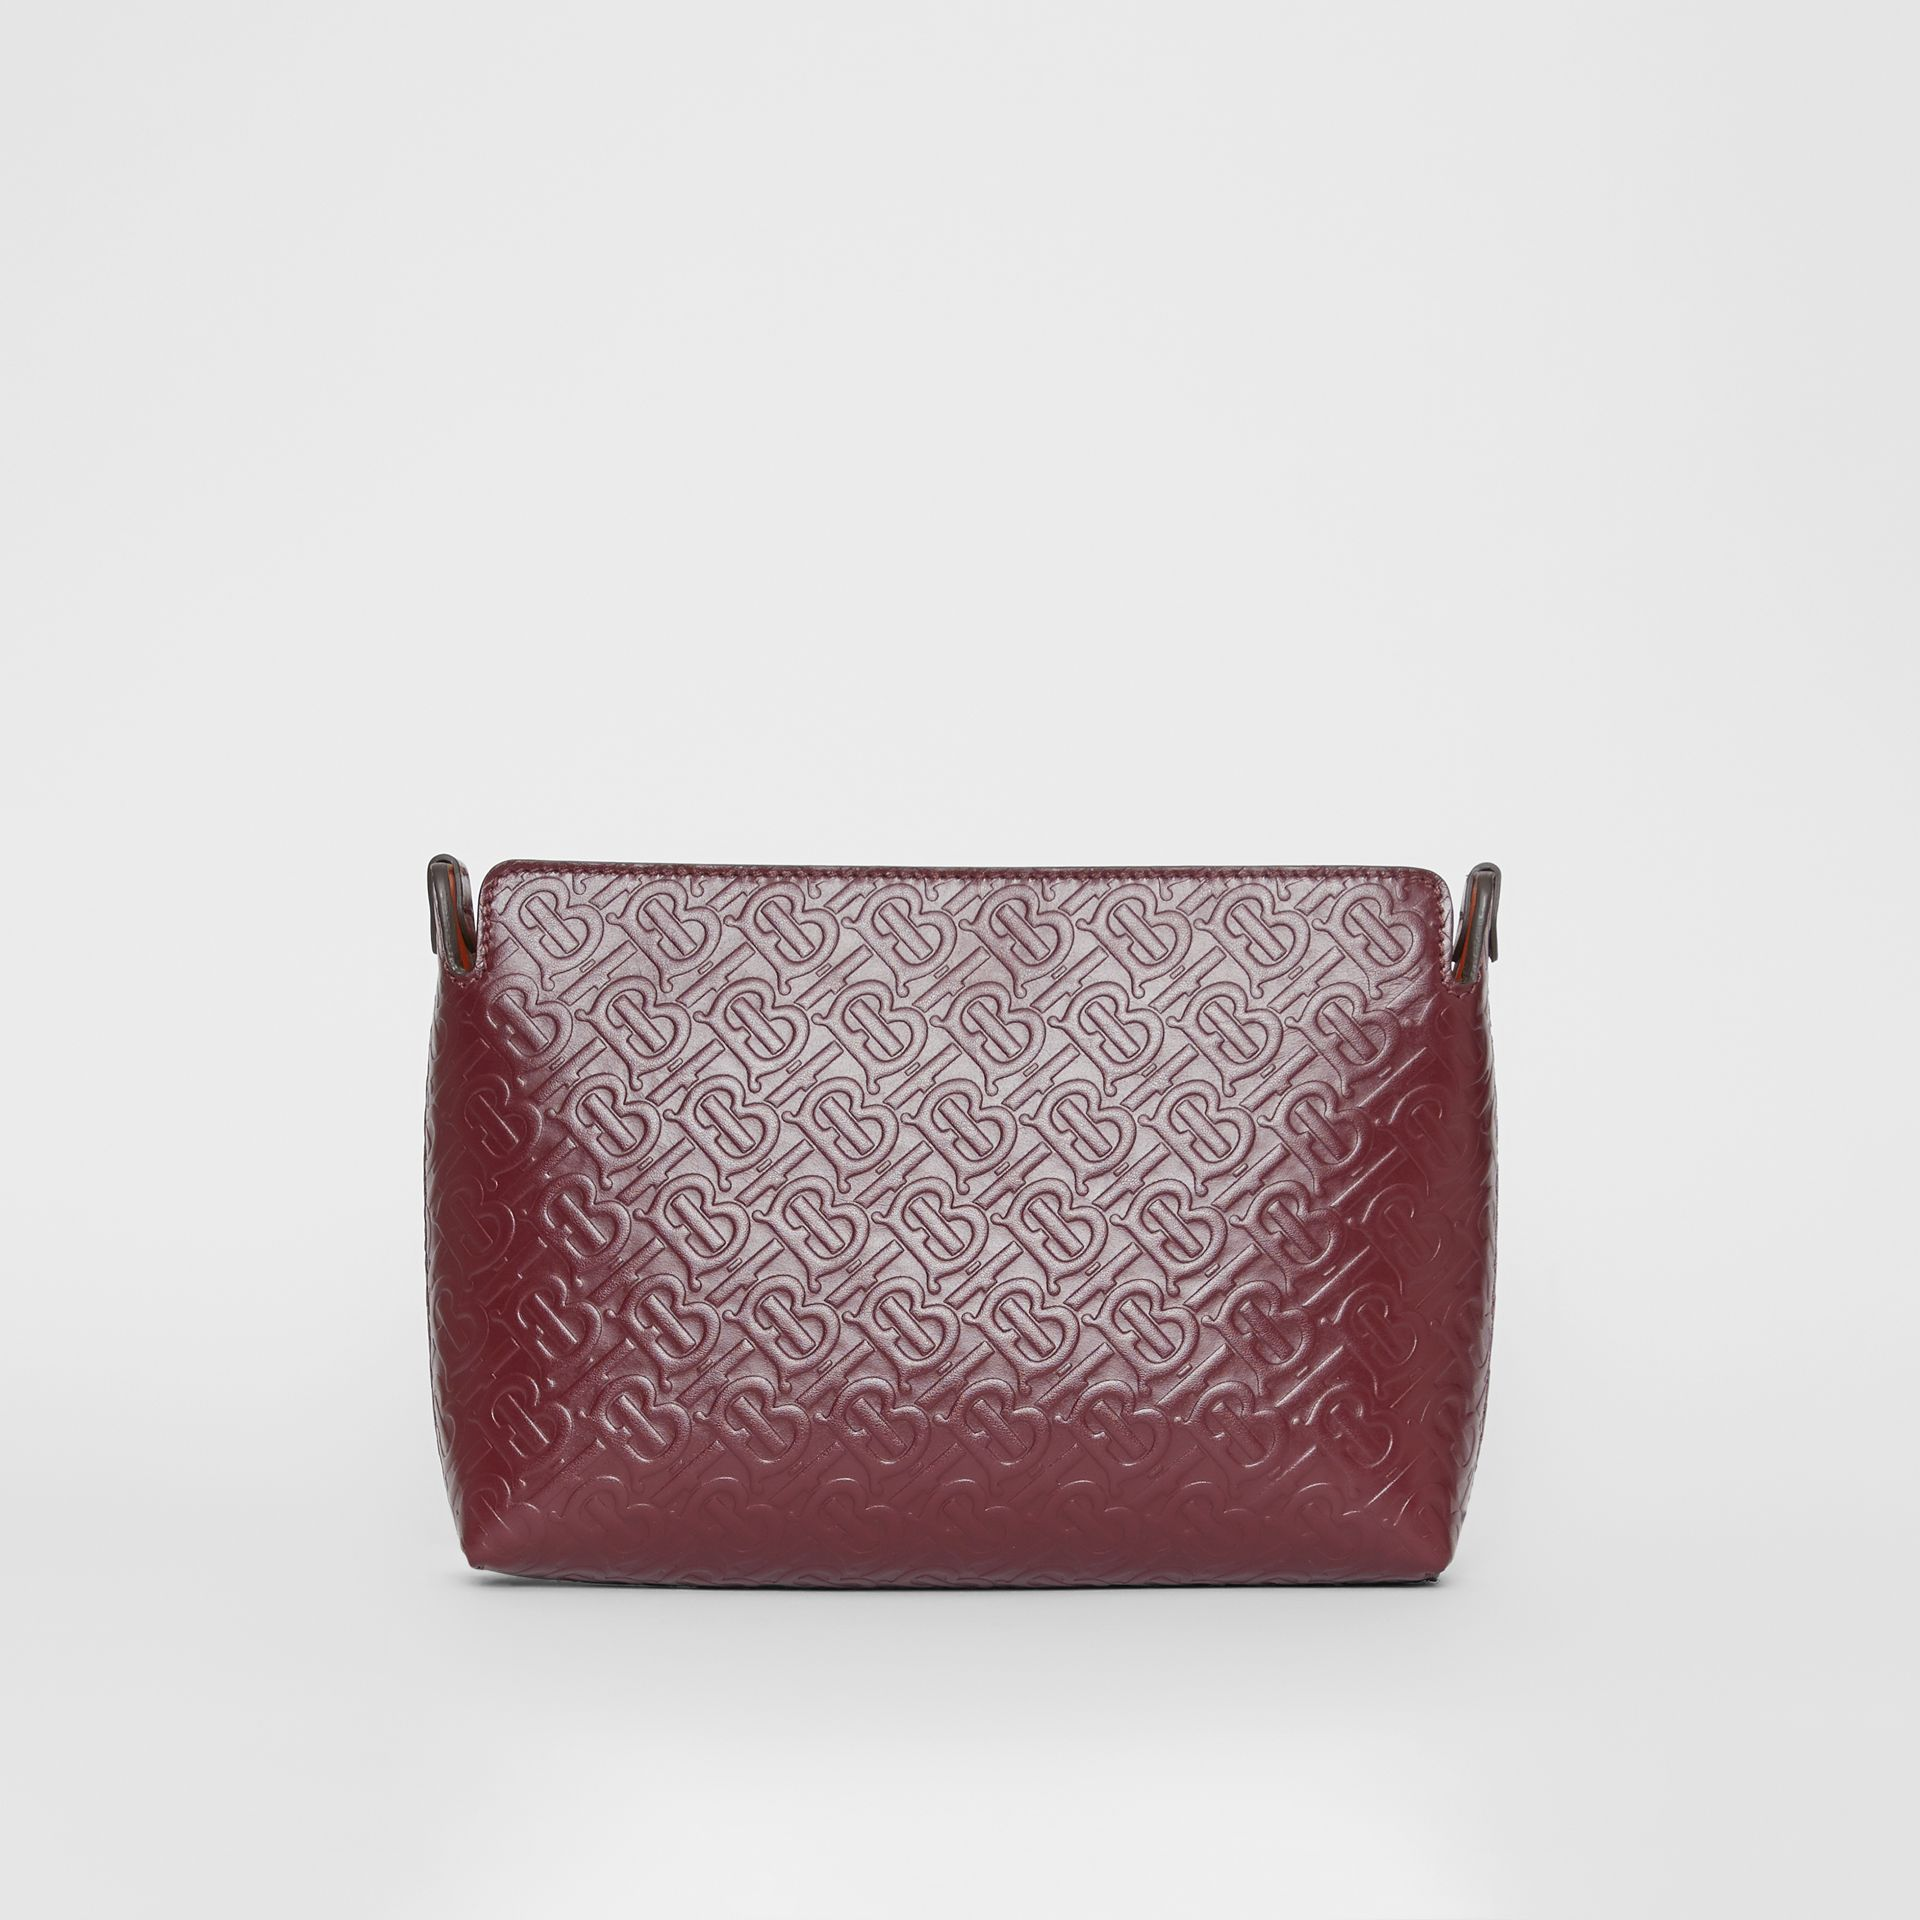 Medium Monogram Leather Clutch in Oxblood - Women | Burberry - gallery image 4